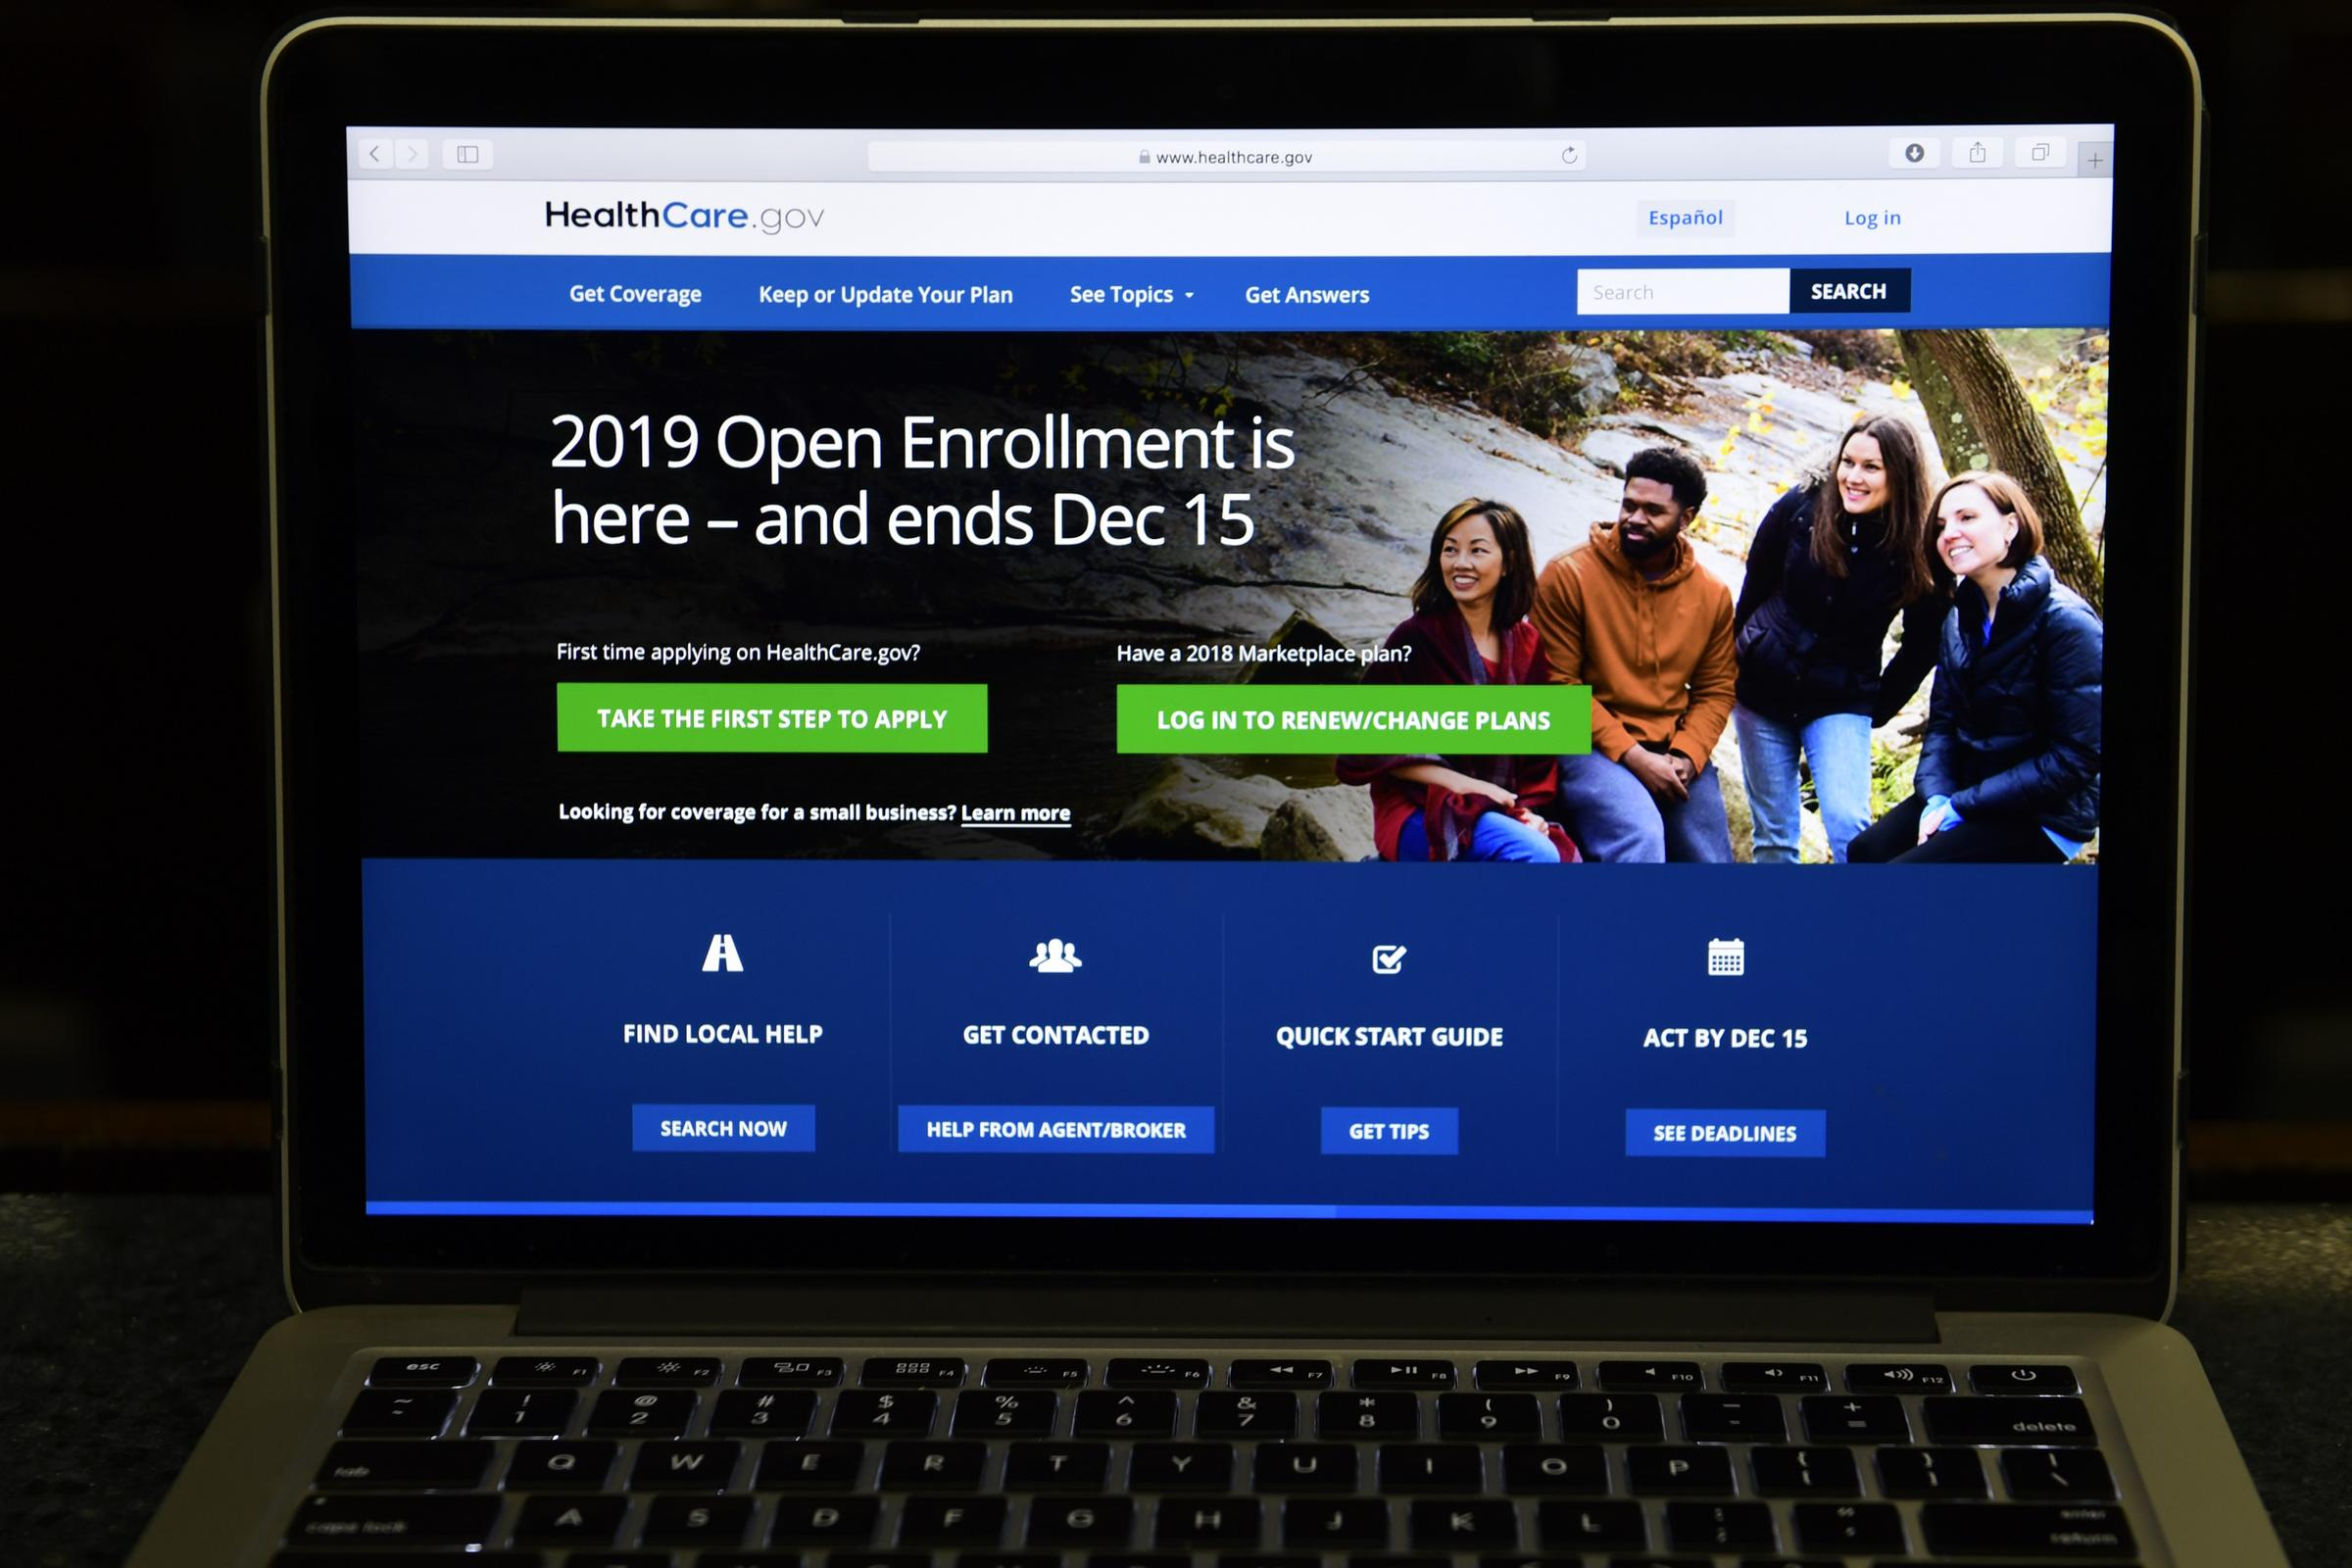 After Obamacare Ruling, States Ask Judge to Protect Coverage During Appeal Process